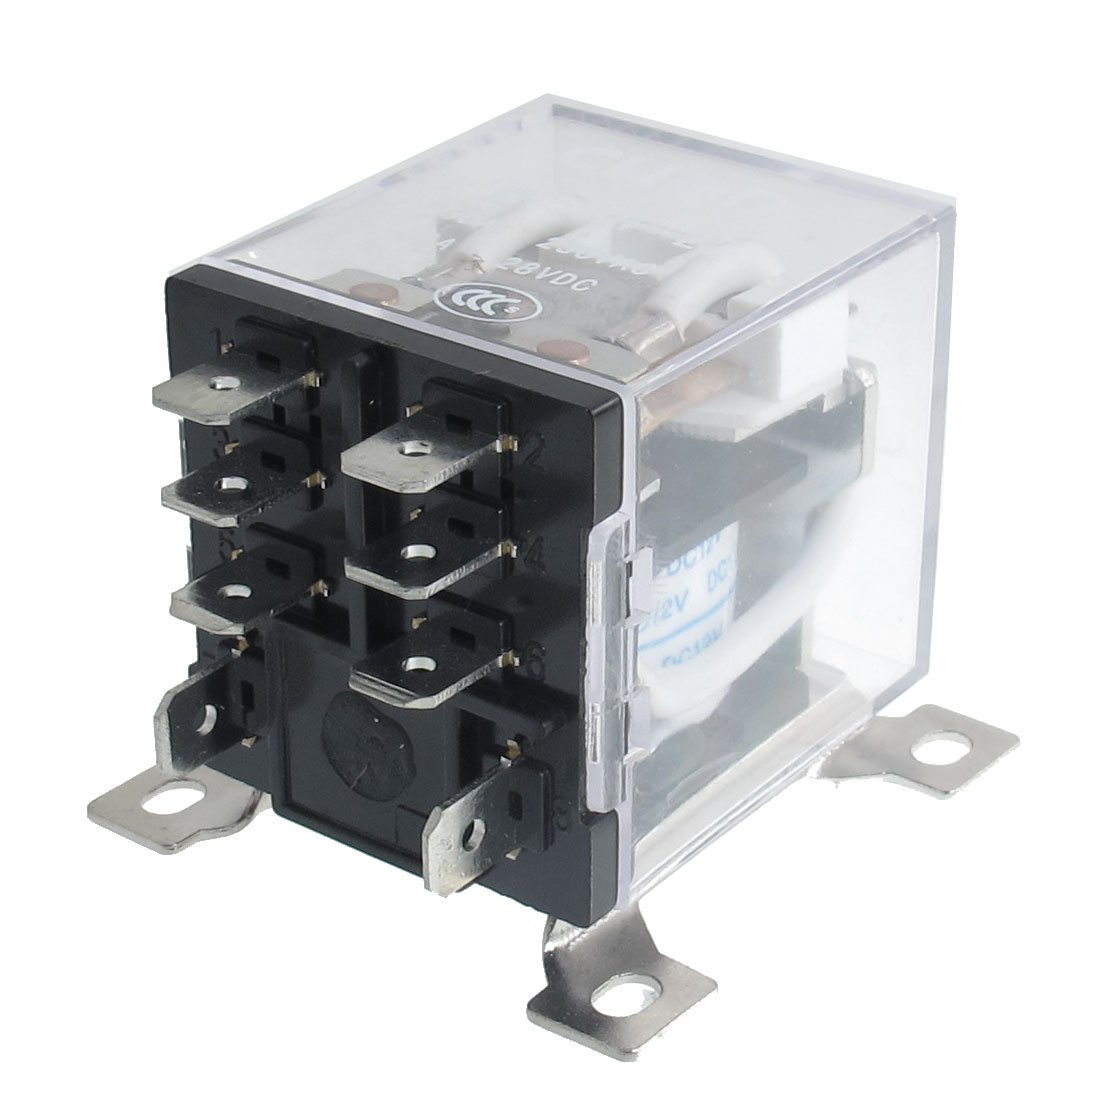 hight resolution of jqx 12f 2z dc 12v 30a dpdt general purpose power relay 8 pin ws rh ebay com au dpdt relay wiring diagram spst relay